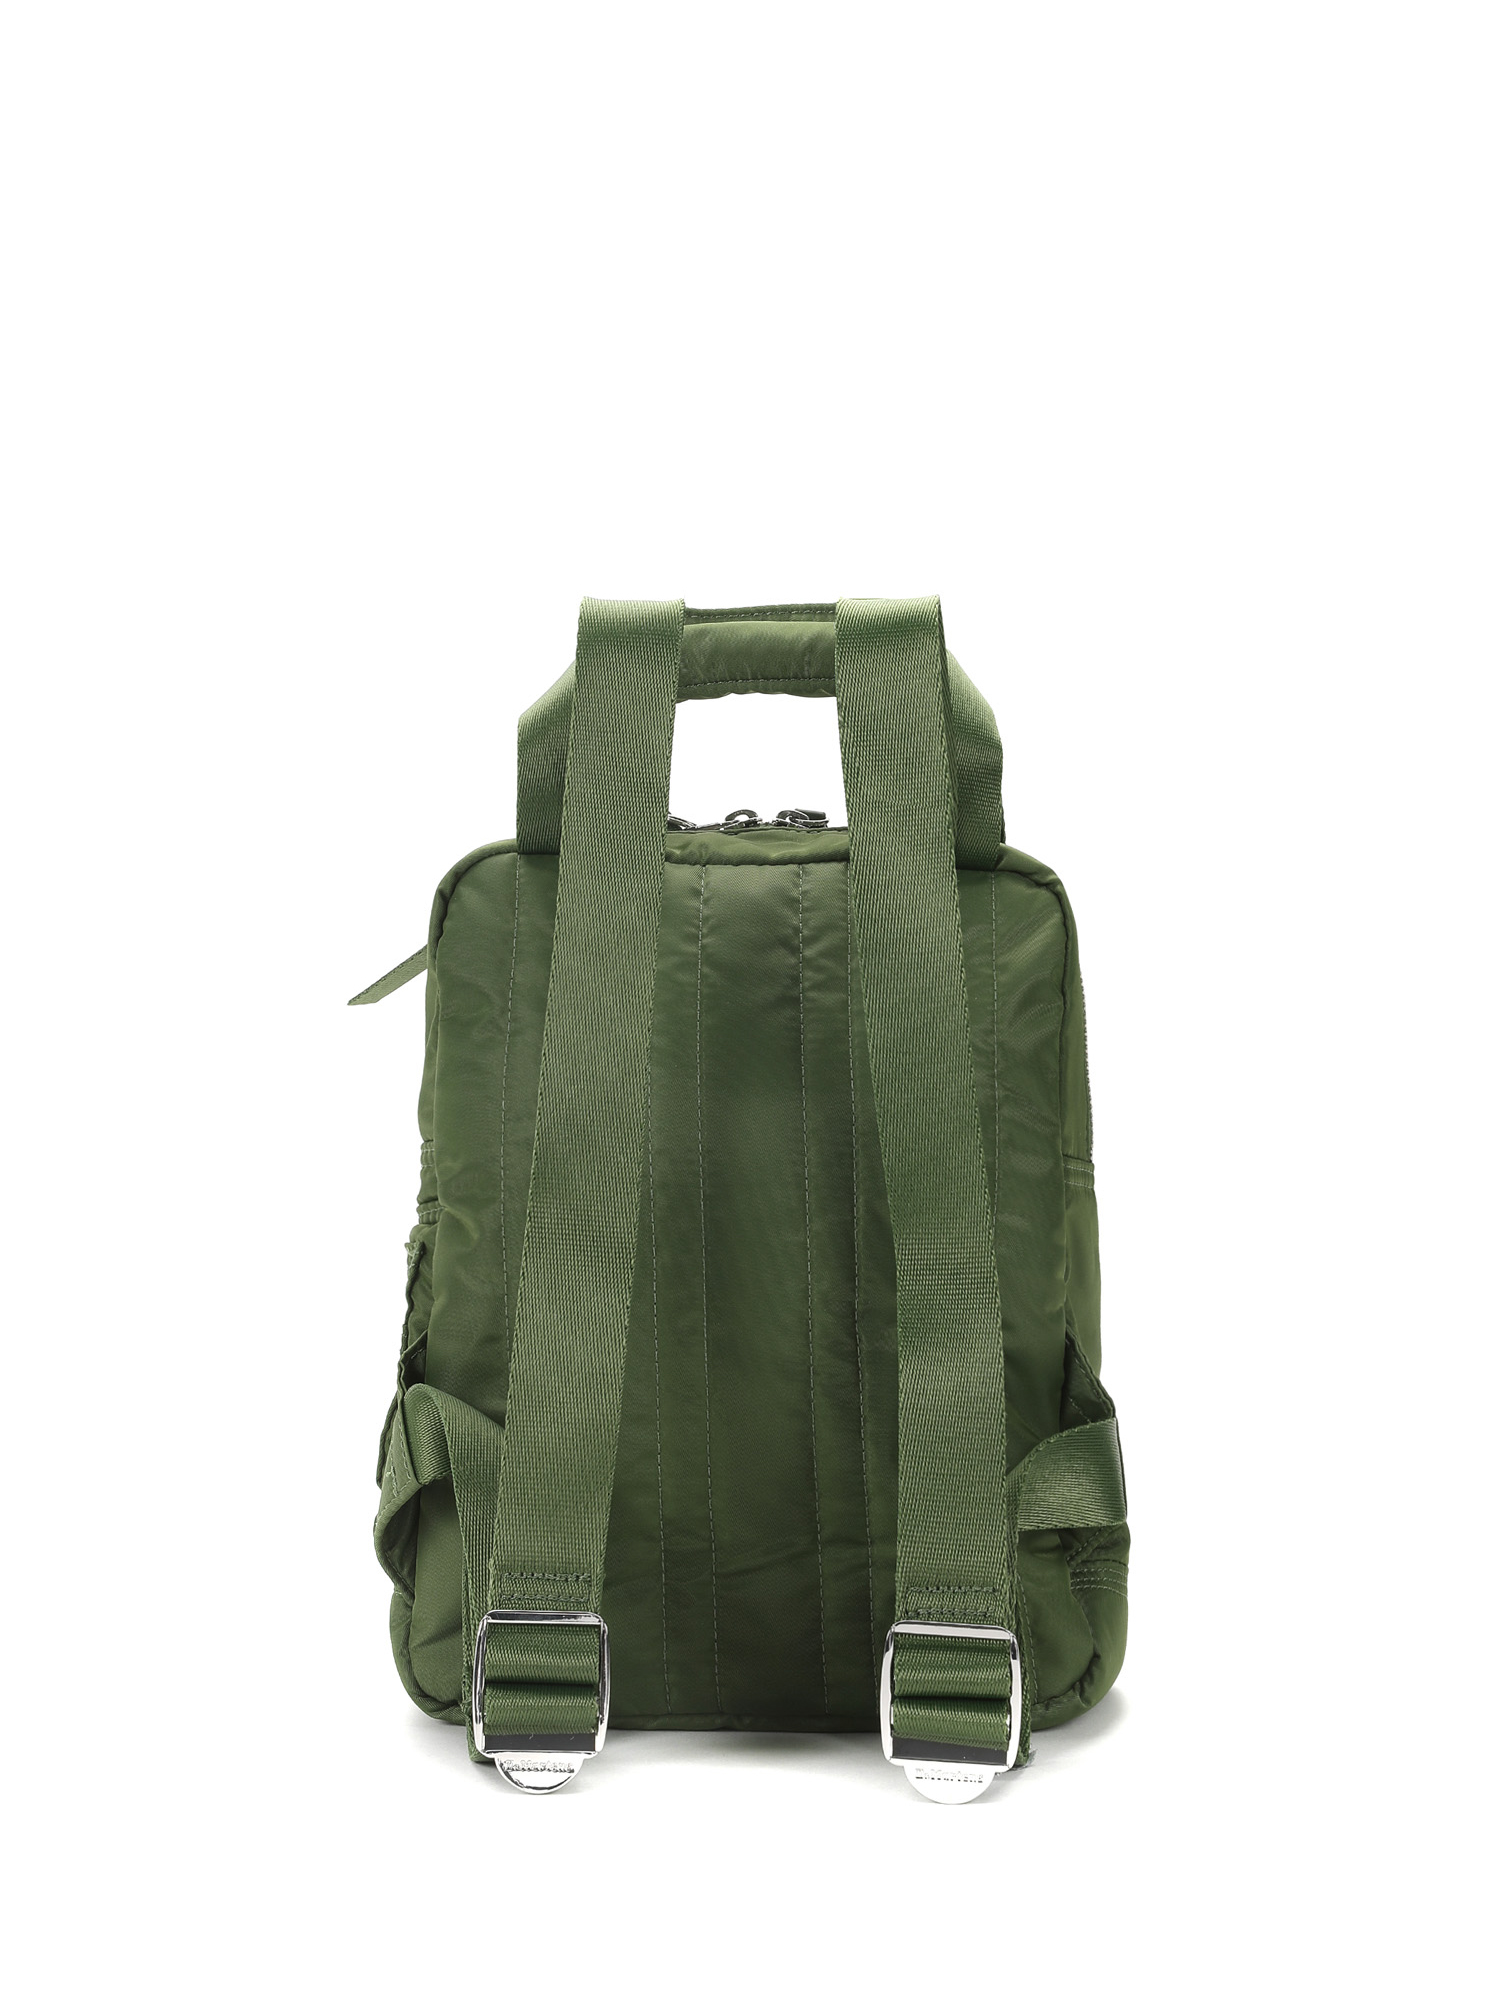 4e67581279 Dr. Martens - Dr. Martens Small Nylon Backpack AB062710 Olive Green ...